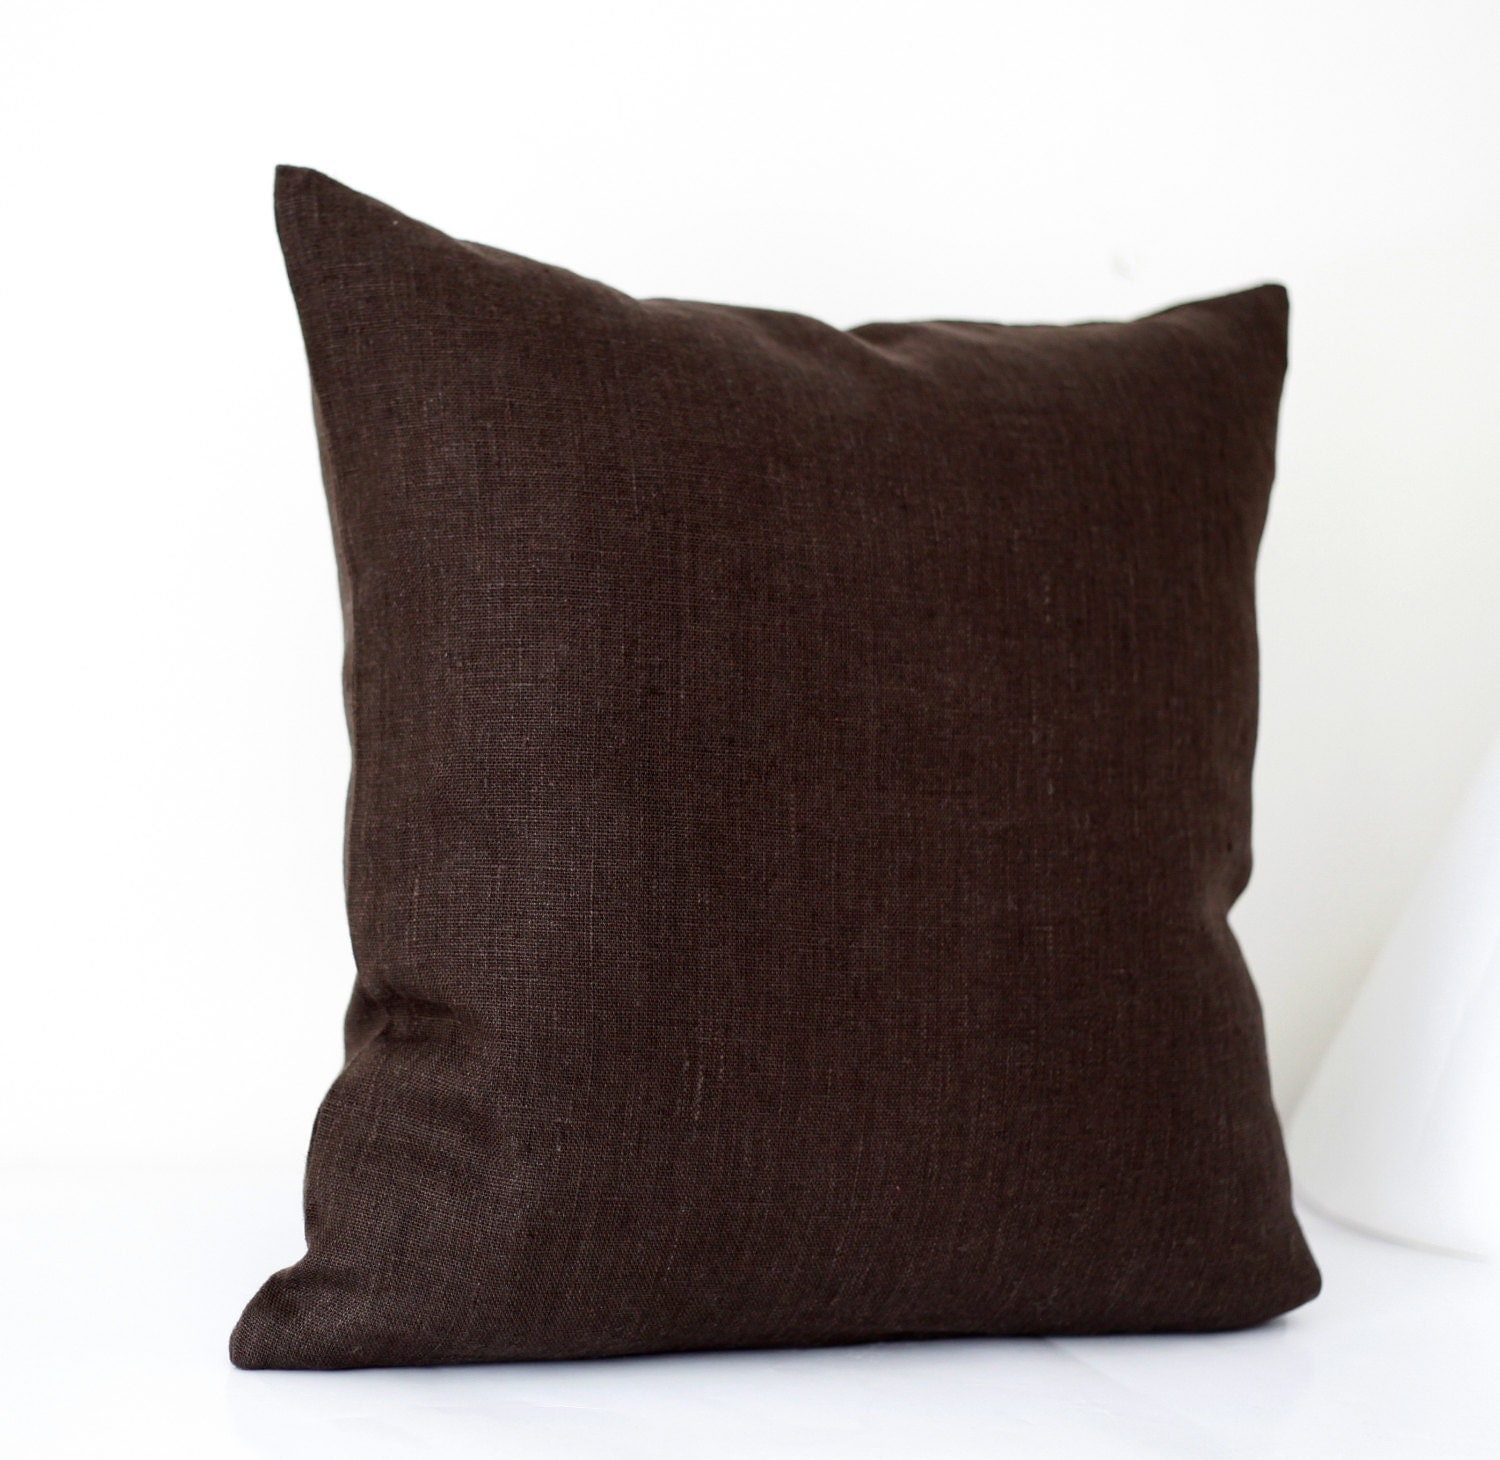 Linen sham chocolate brown throw pillows pillow by pillowlink : ilfullxfull43718422960ez from www.etsy.com size 1500 x 1460 jpeg 273kB